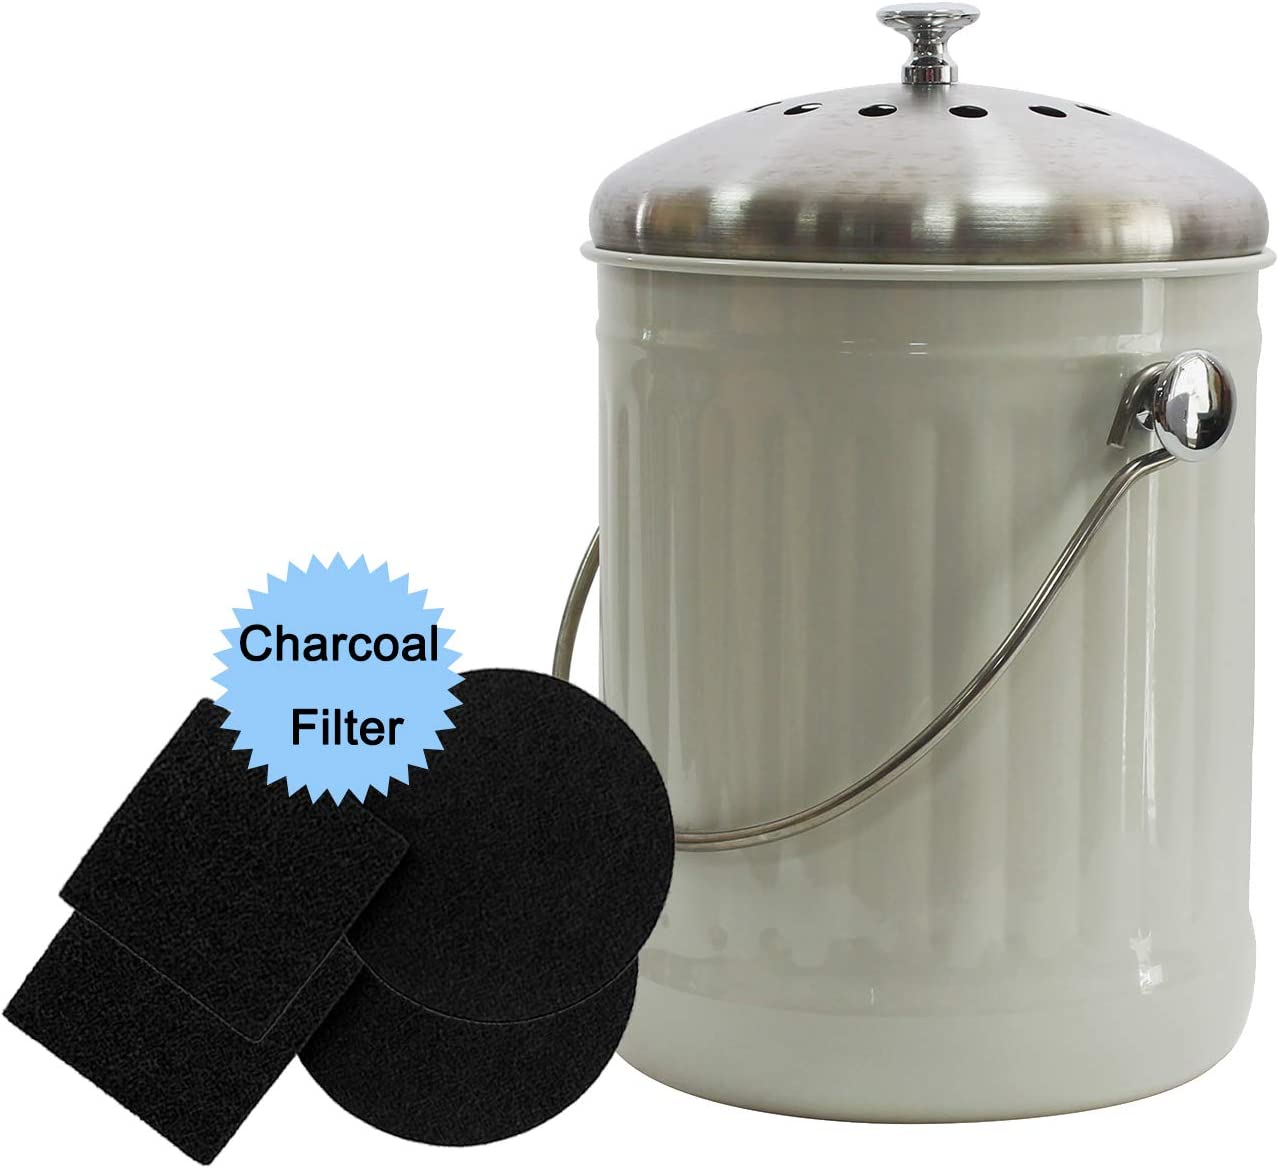 4W Kitchen Compost Bin with 4 Charcoal Filters - 1.3 Gallon Indoor Compost Bin for Kitchen Counter for Food Waste Odor Free (White)